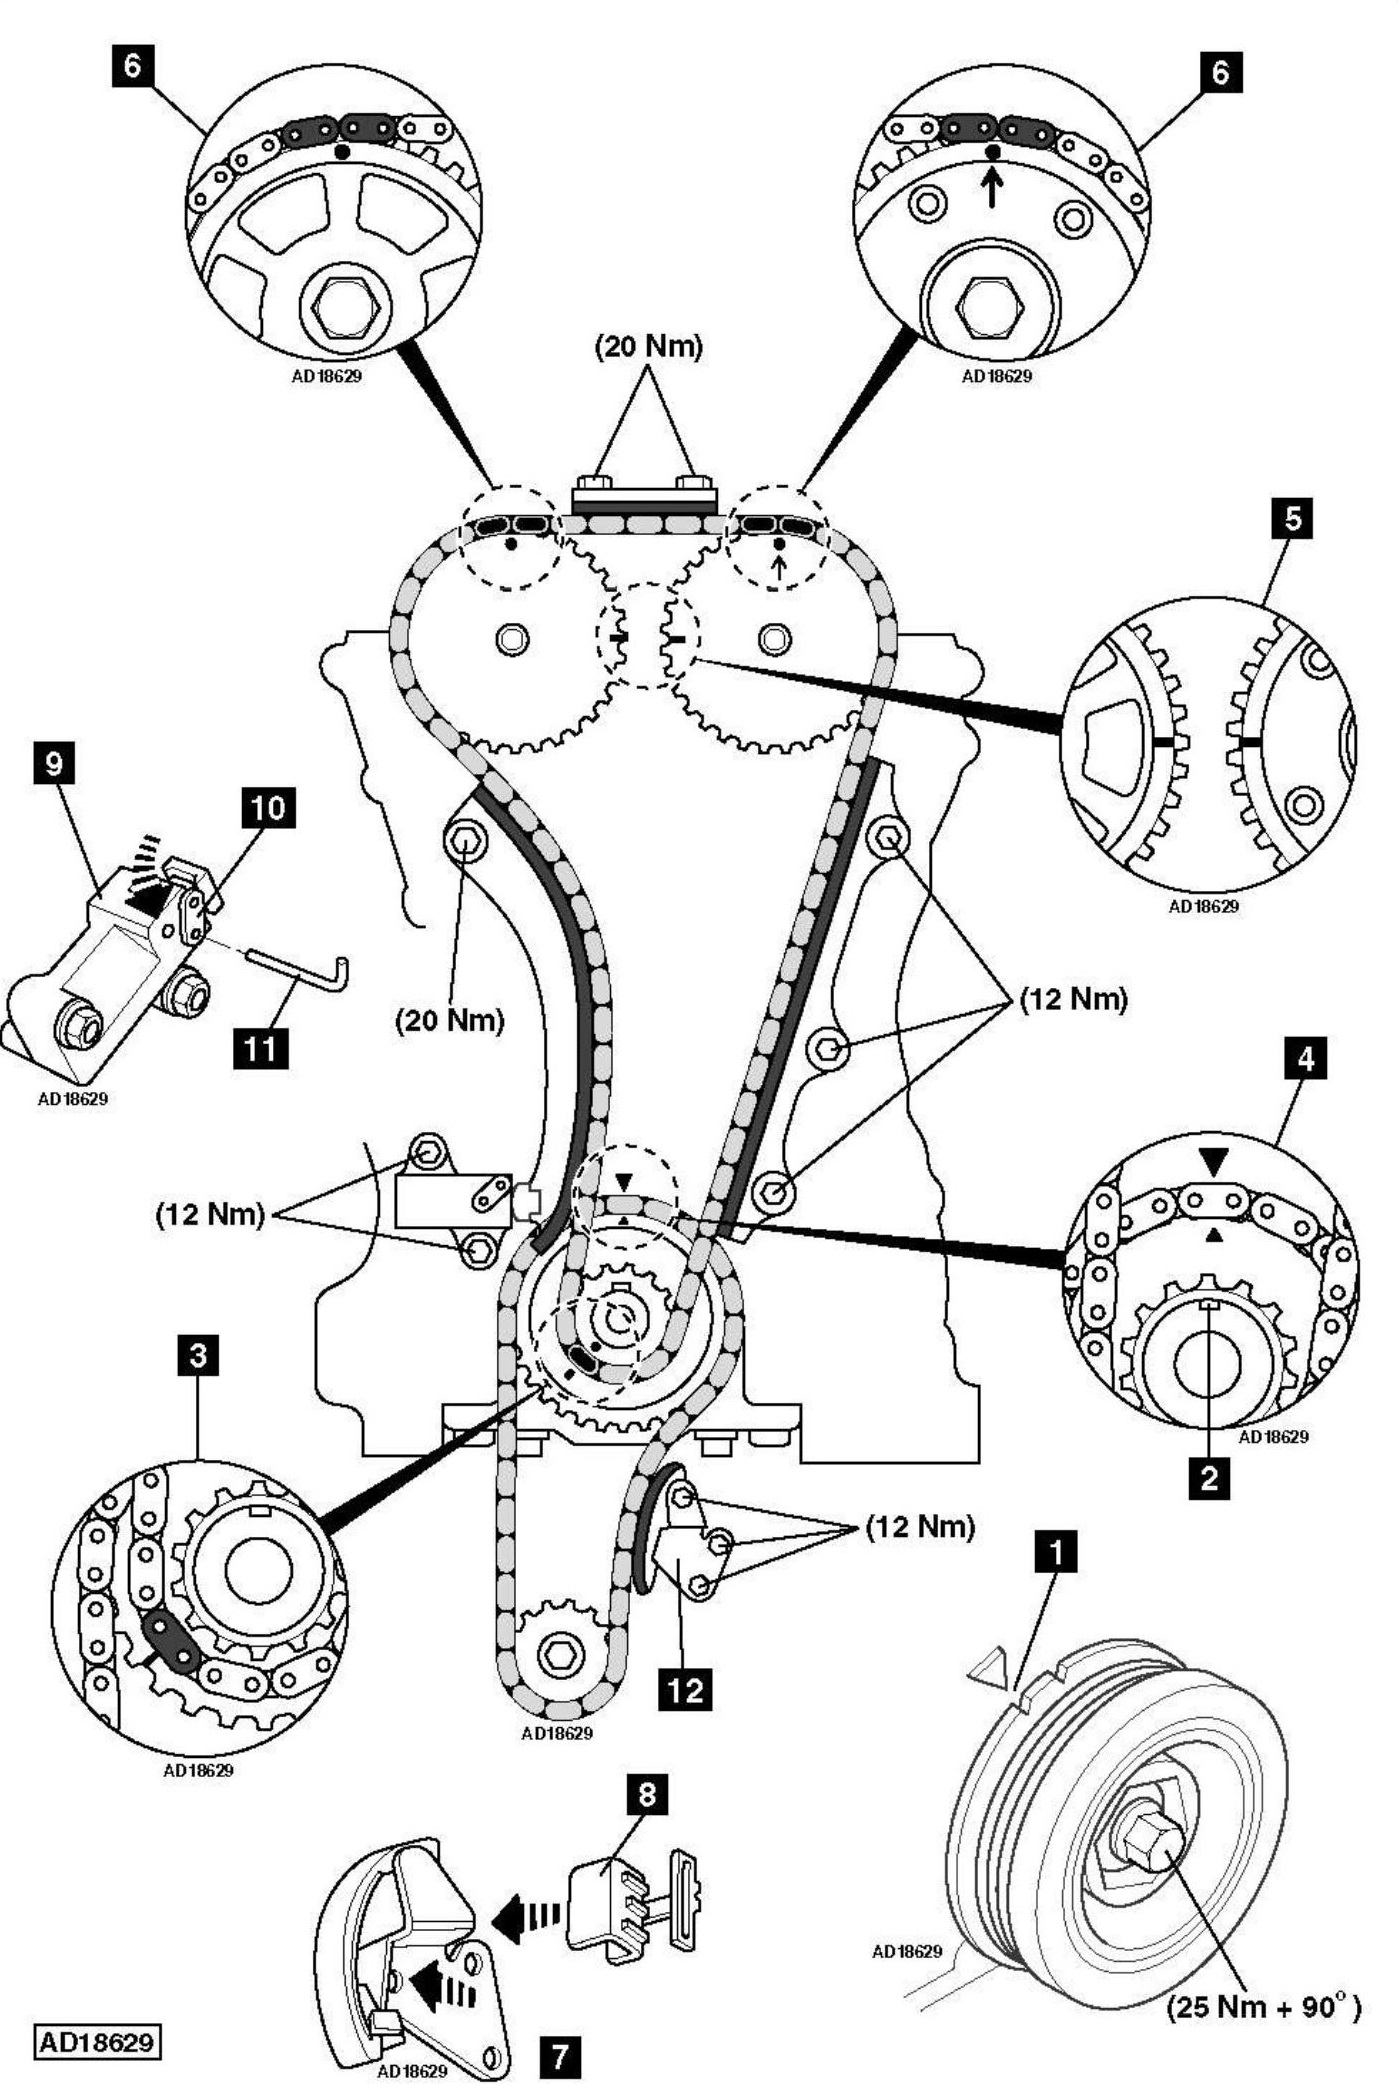 Honda Accord Timing Belt Broke on geo prizm engine diagram besides